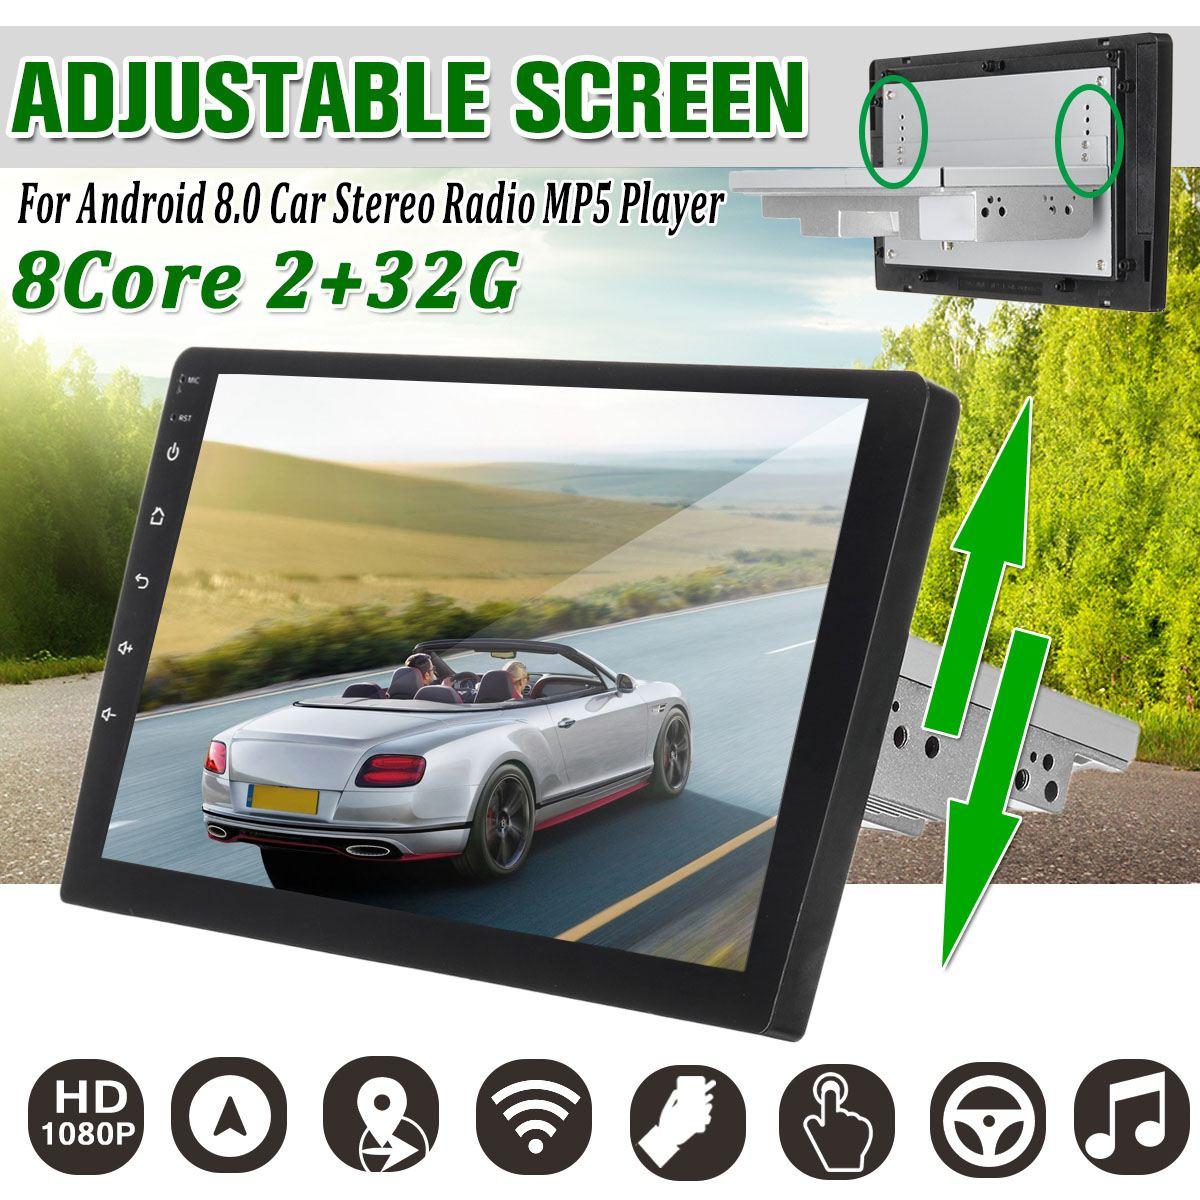 2+32G Android 8.0 Car Multimedia Player 1Din Radio Player 9/10.1 with Up Down Adjustable Screen Wifi bluetooth GPS Car Stereo image